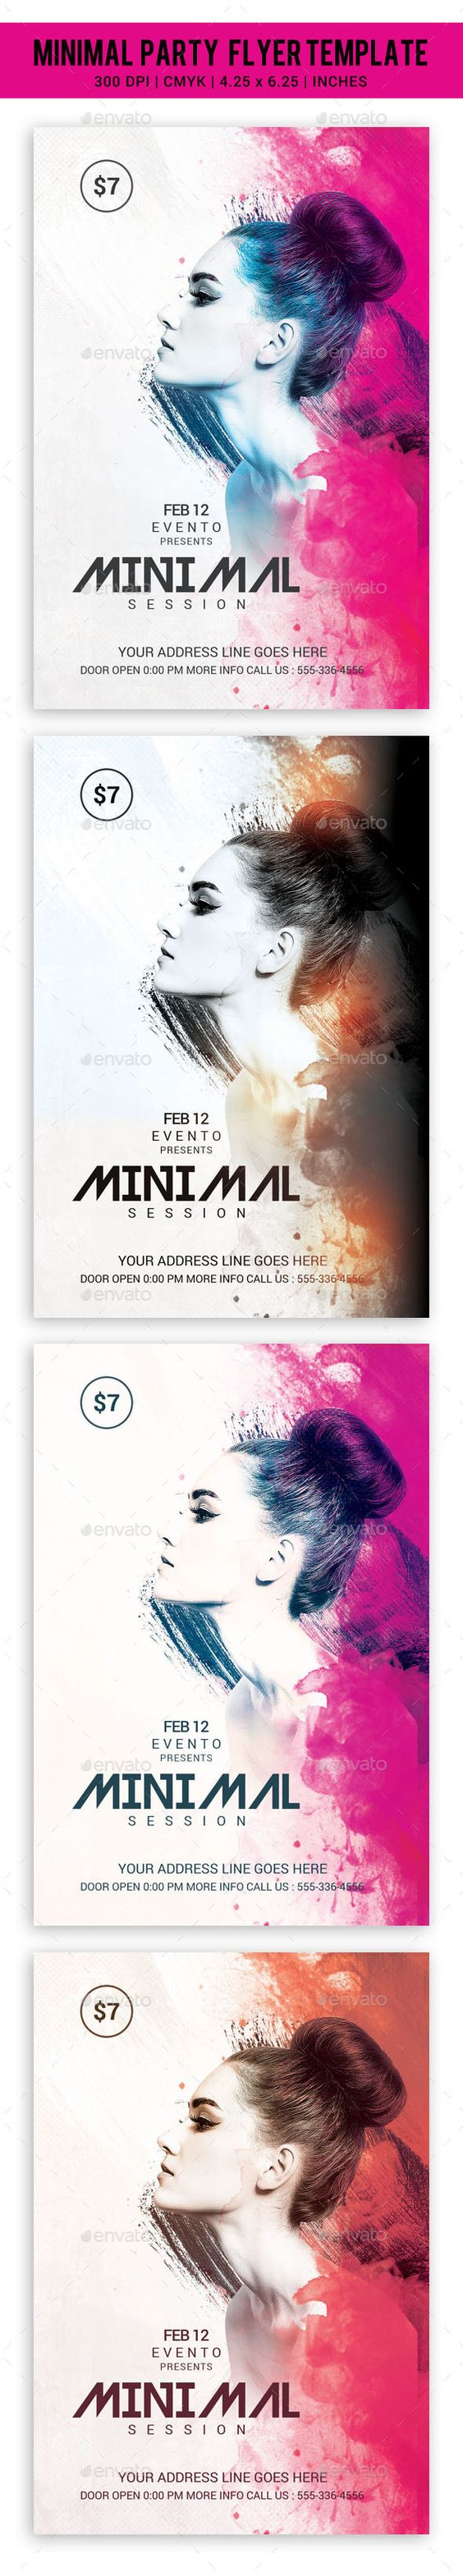 minimal party flyer template parties party flyer and electro minimal party flyer template psd design graphicriver net